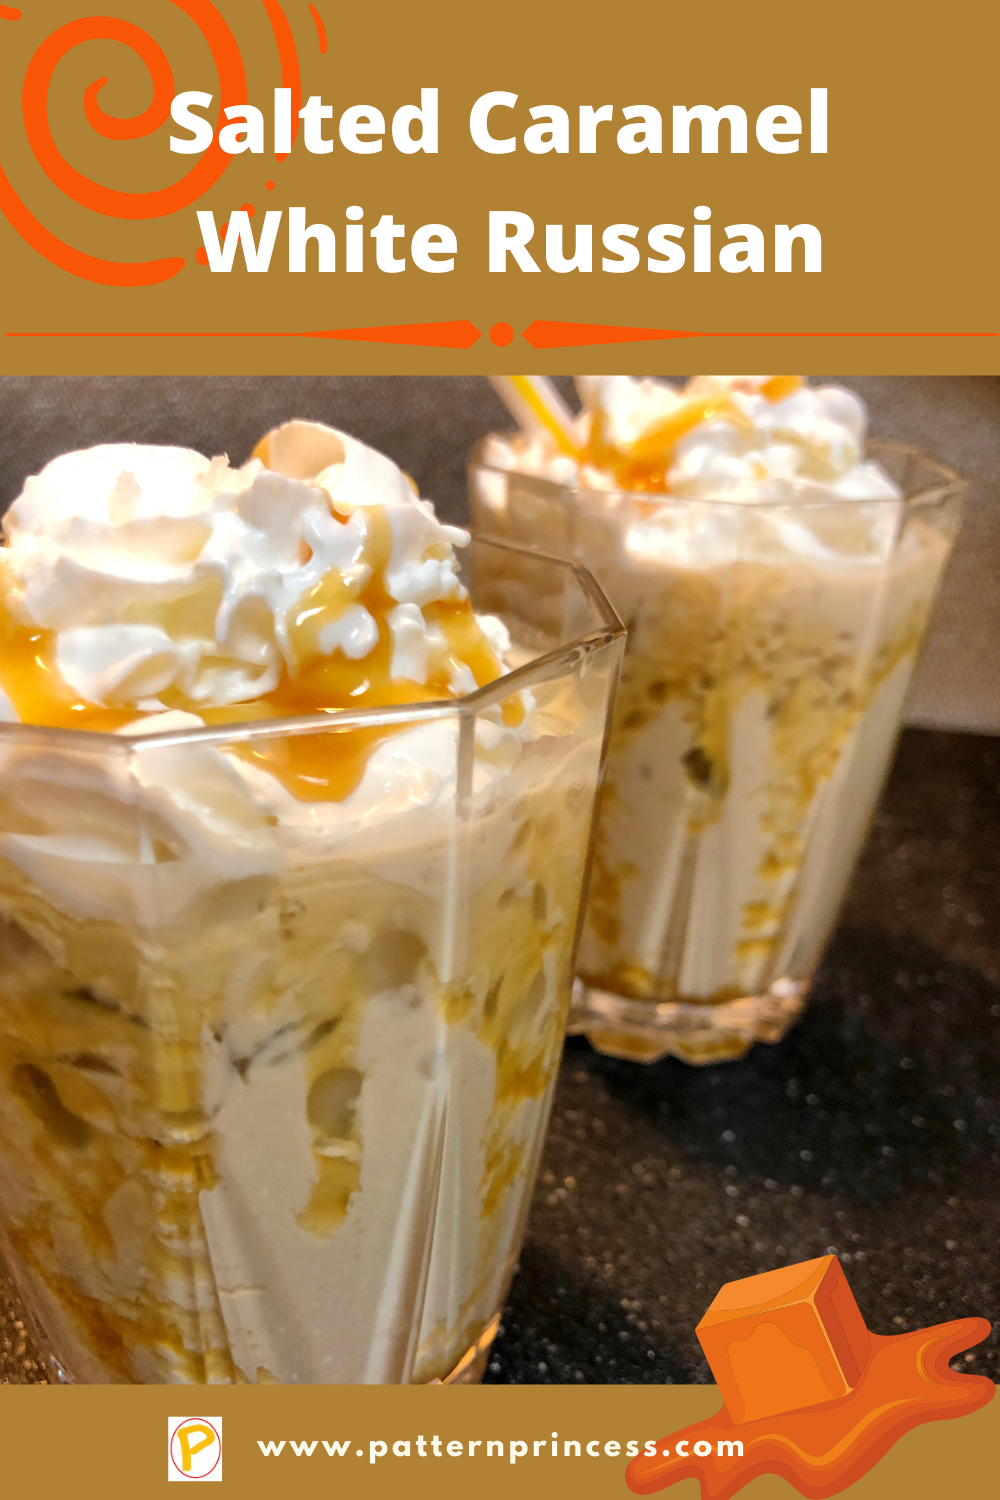 Salted Caramel White Russian